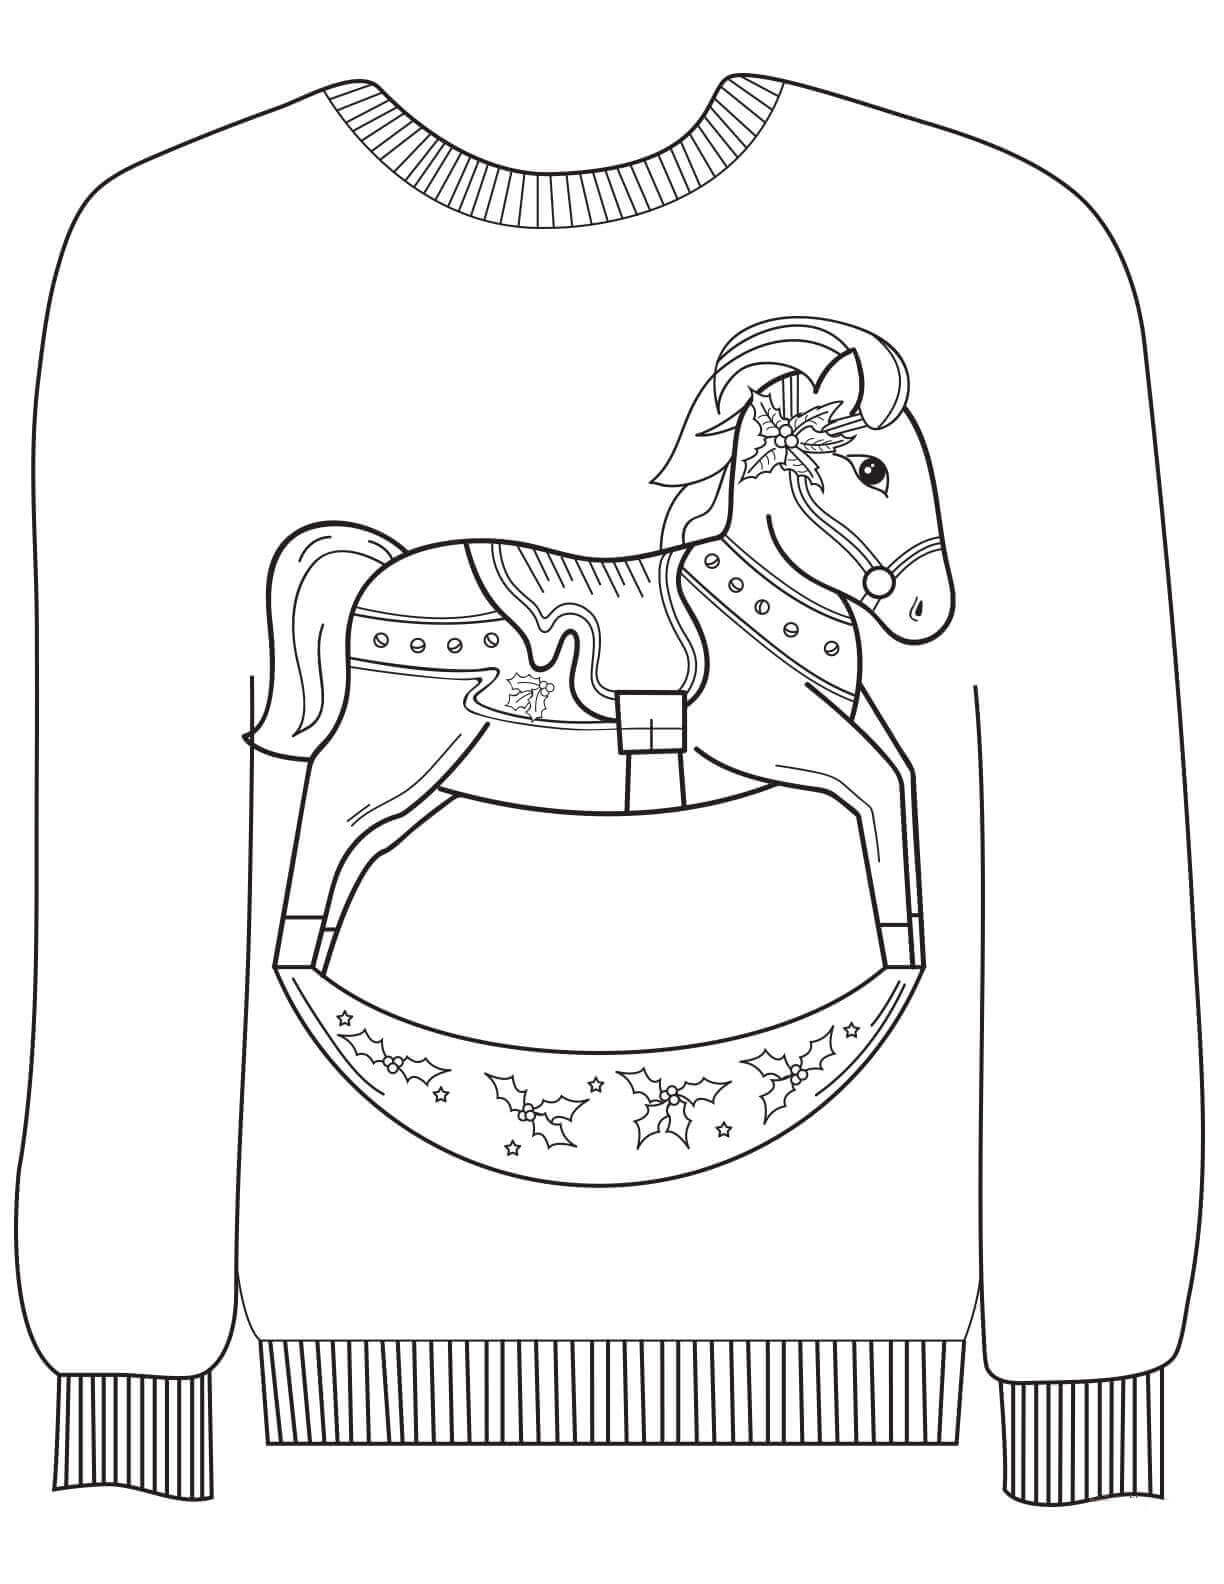 Ugly Christmas Sweater with Rocking Horse Print Coloring Page